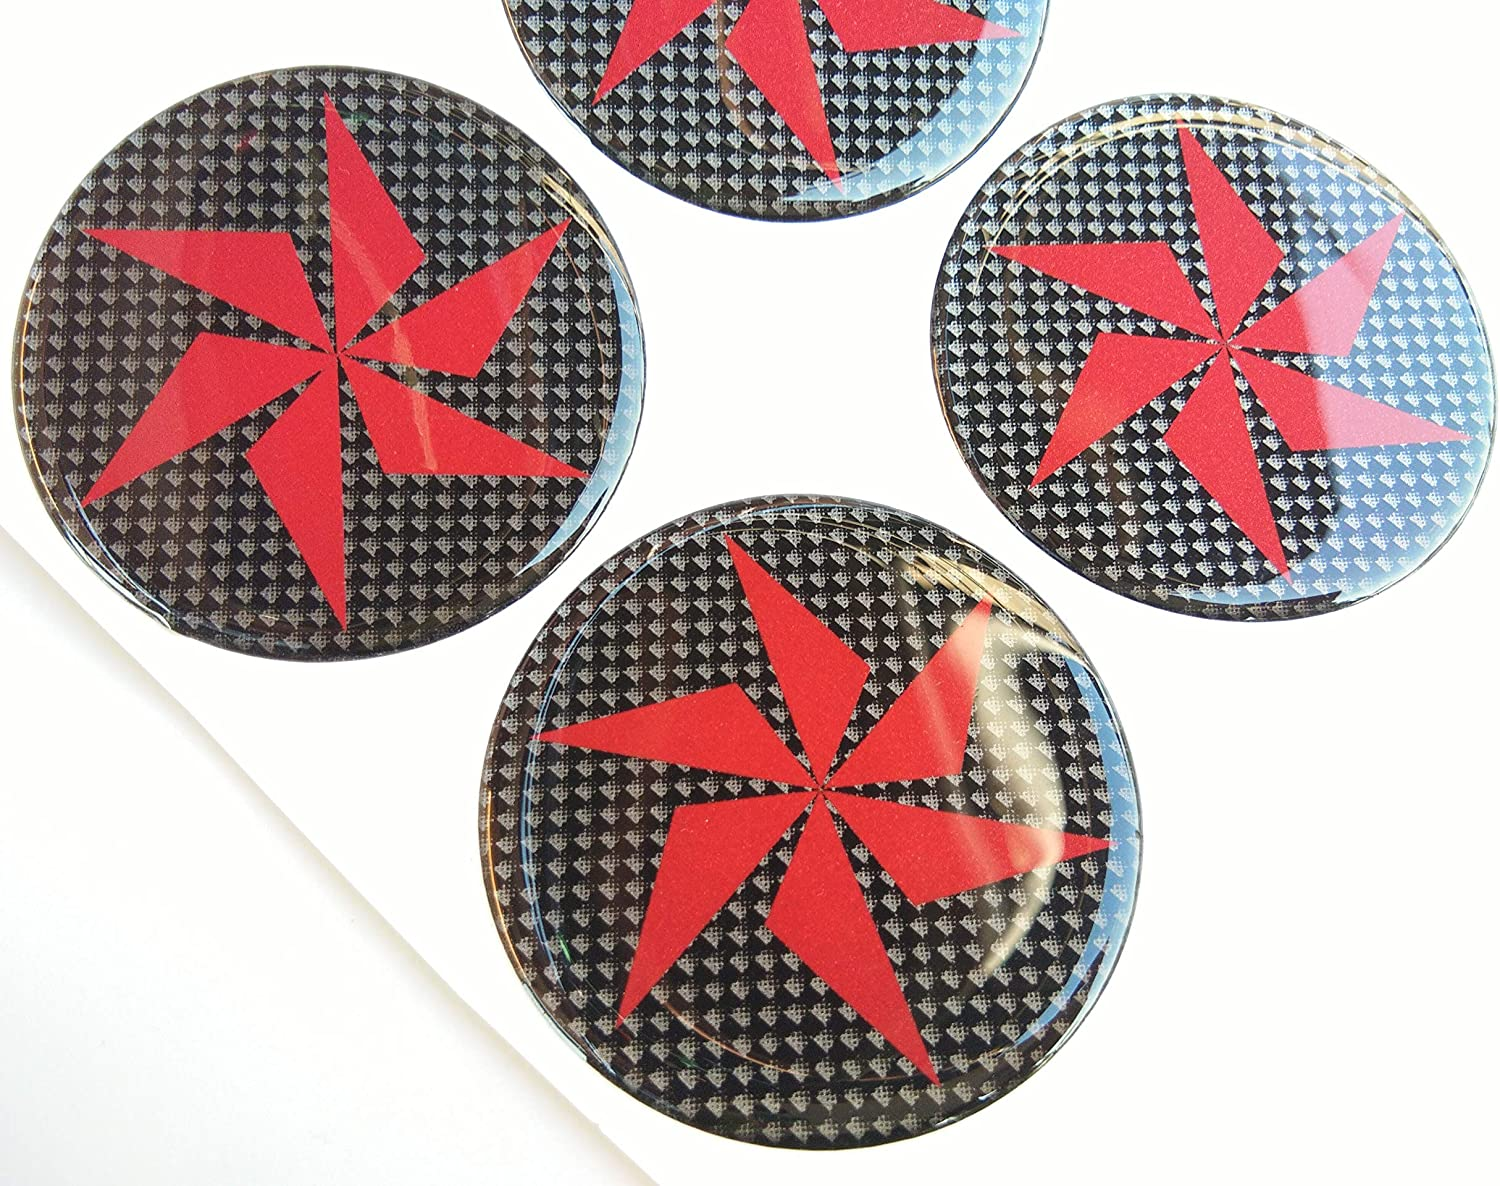 65 mm Turbine Blade Fan Domed Wheel Cap Hub Decal Decals Center Black Red Reflective Kevlar Carbon Fiber 4 Pcs Gloss 3D Gel Rear Resin Motorcycle Sticker Badge Trunk Truck Rims All Series Safety Racing Automotive